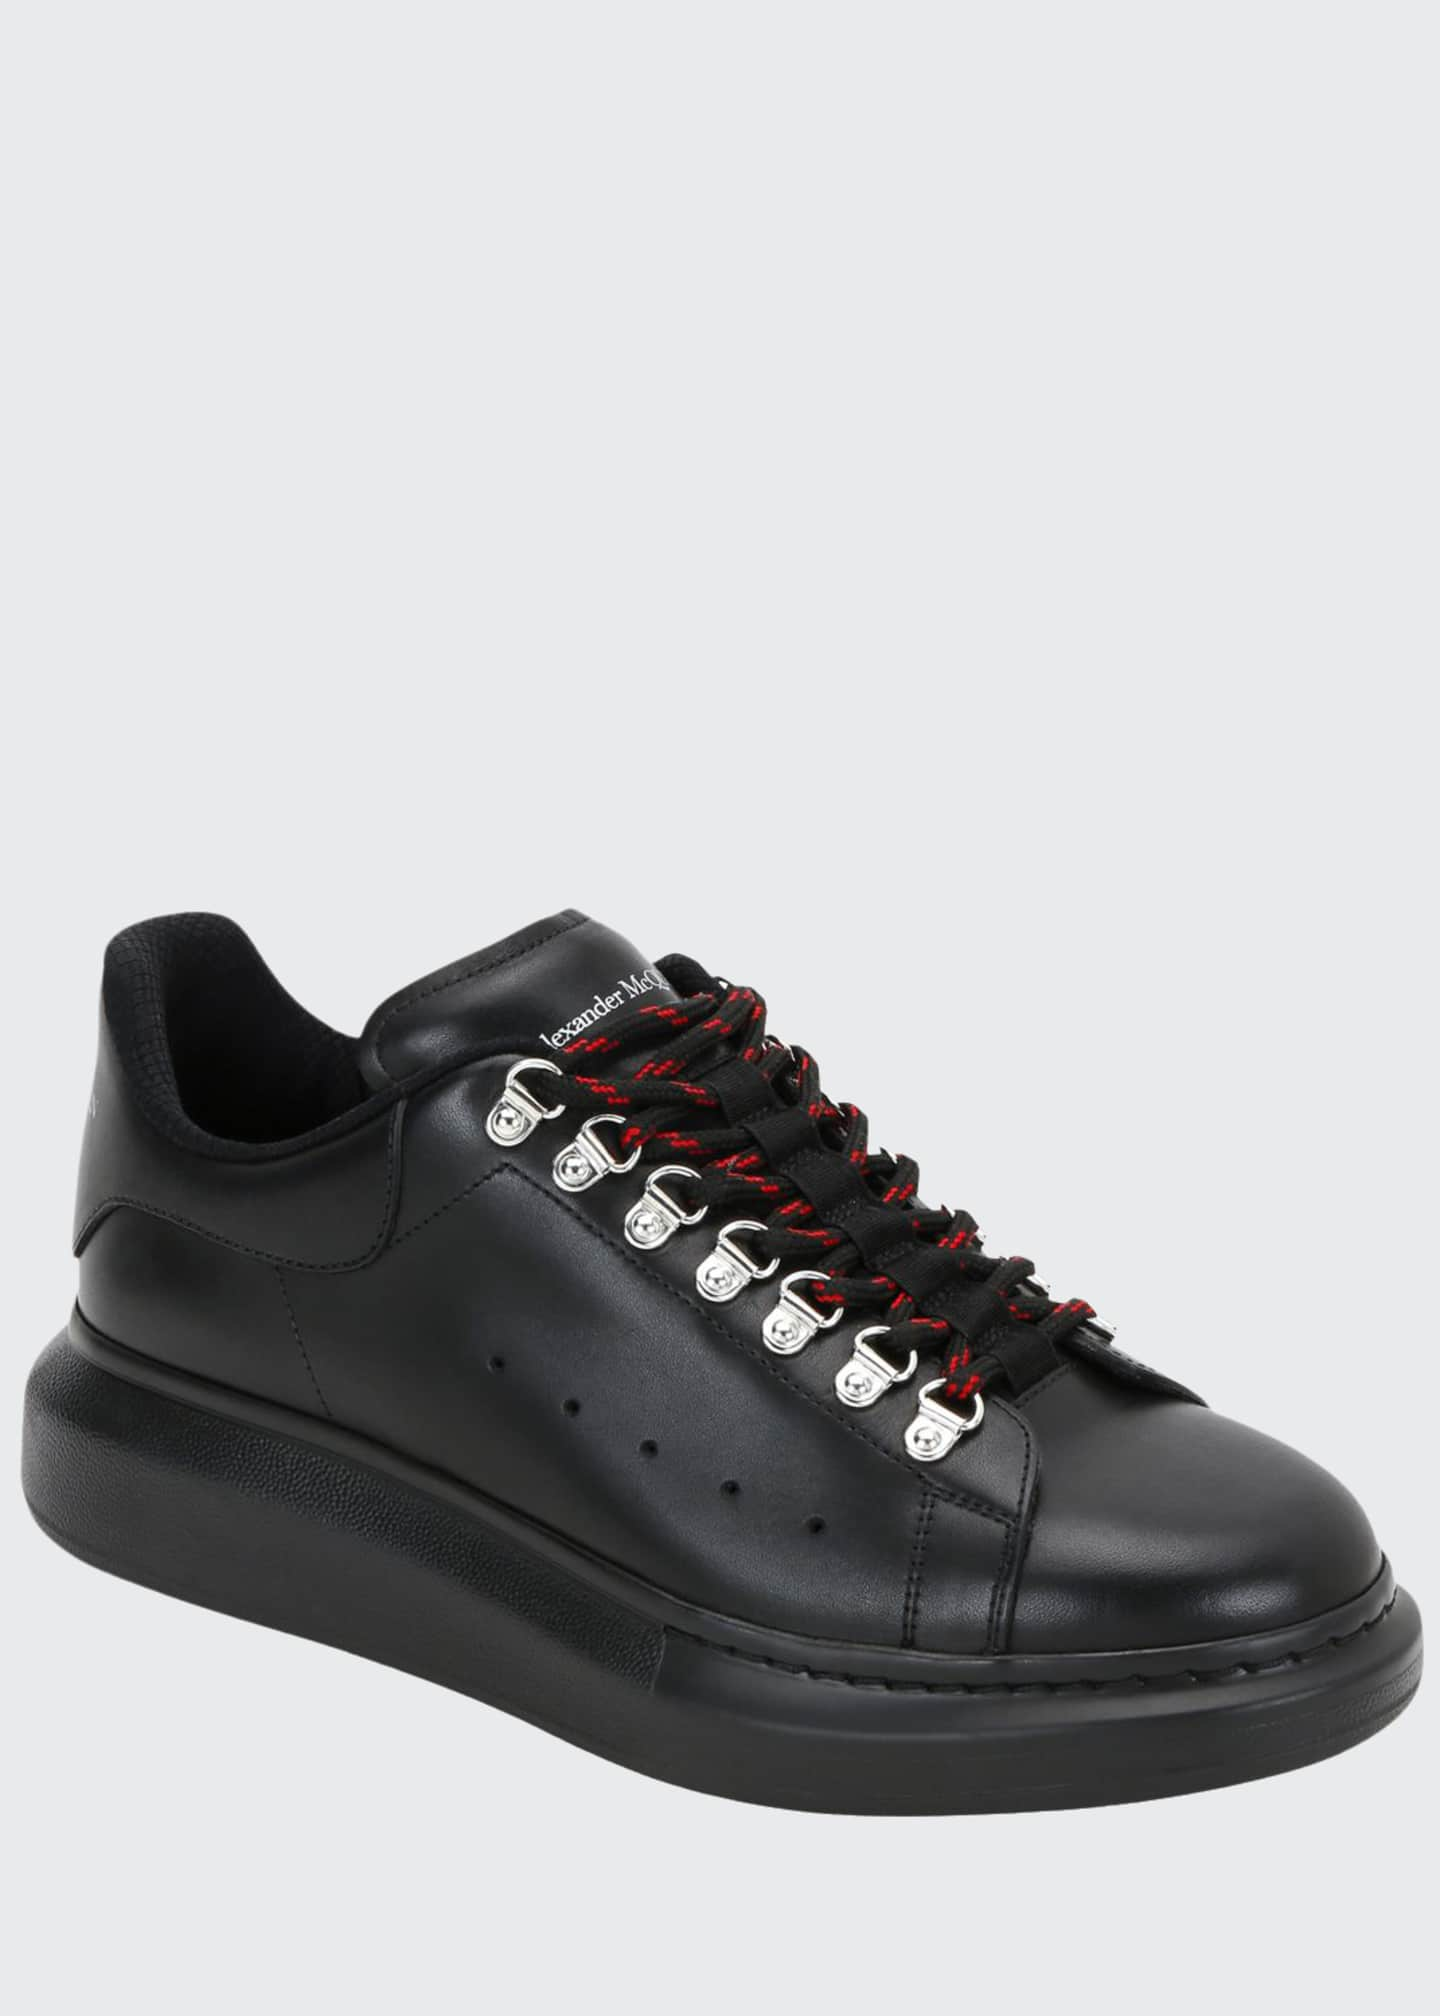 Image 1 of 4: Men's Oversized Sneakers w/ Hiking Laces